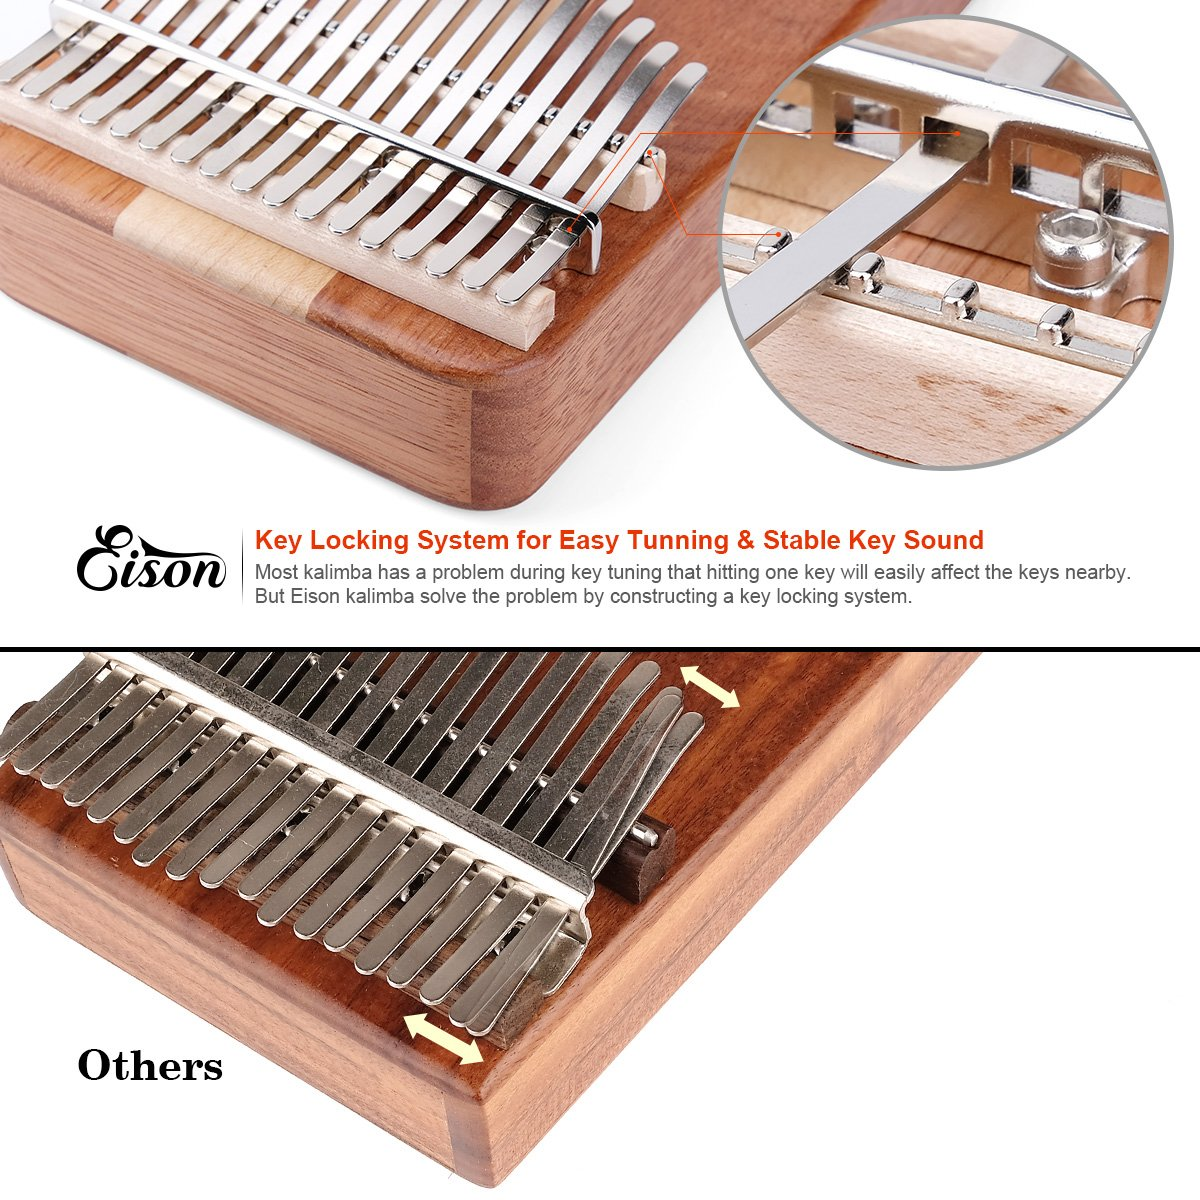 Kalimba,Eison Kalimba Thumb Piano Finger Piano 17 keys with Key Locking System with Instruction and Tune Hammer, Solid Wood Mahogany & Maple Body- Best Gift for Music Fans Kids Adults,E-17 by Eison (Image #2)